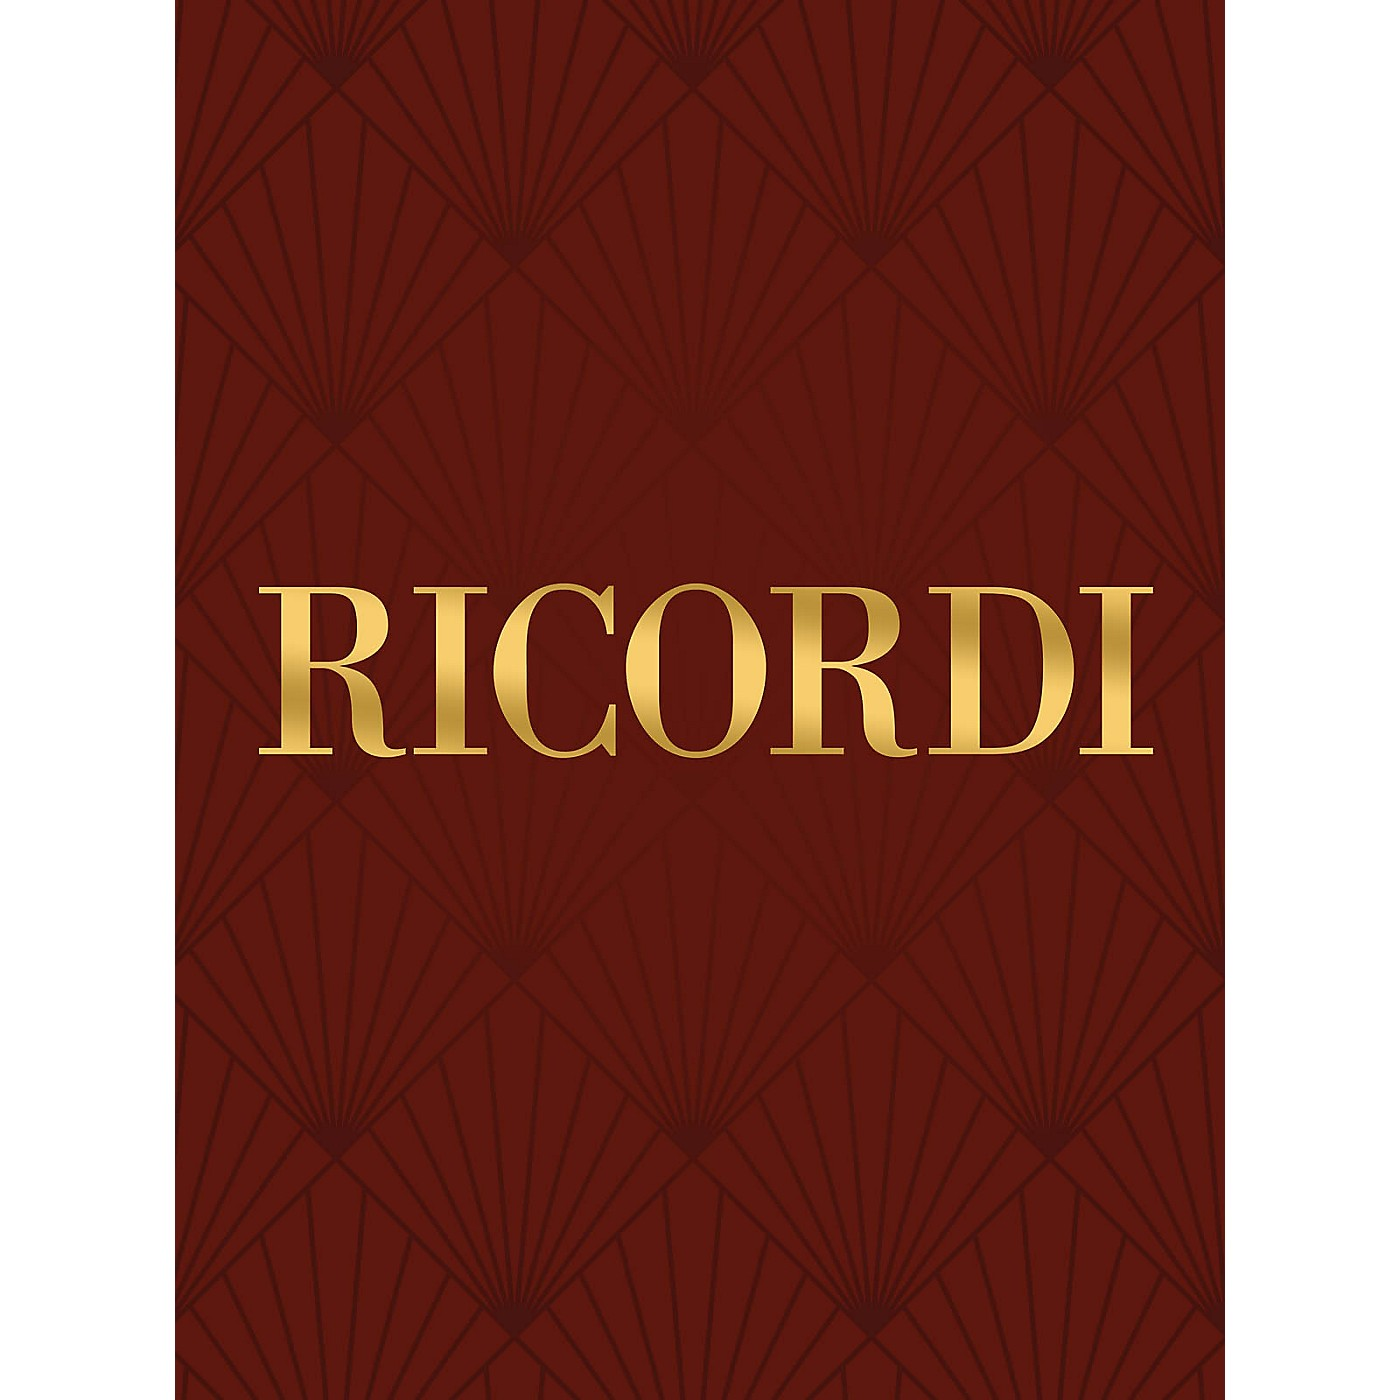 Ricordi Conc in A Major for Violin Strings and Basso Continuo RV346 Study Score by Vivaldi Edited by Bellezza thumbnail